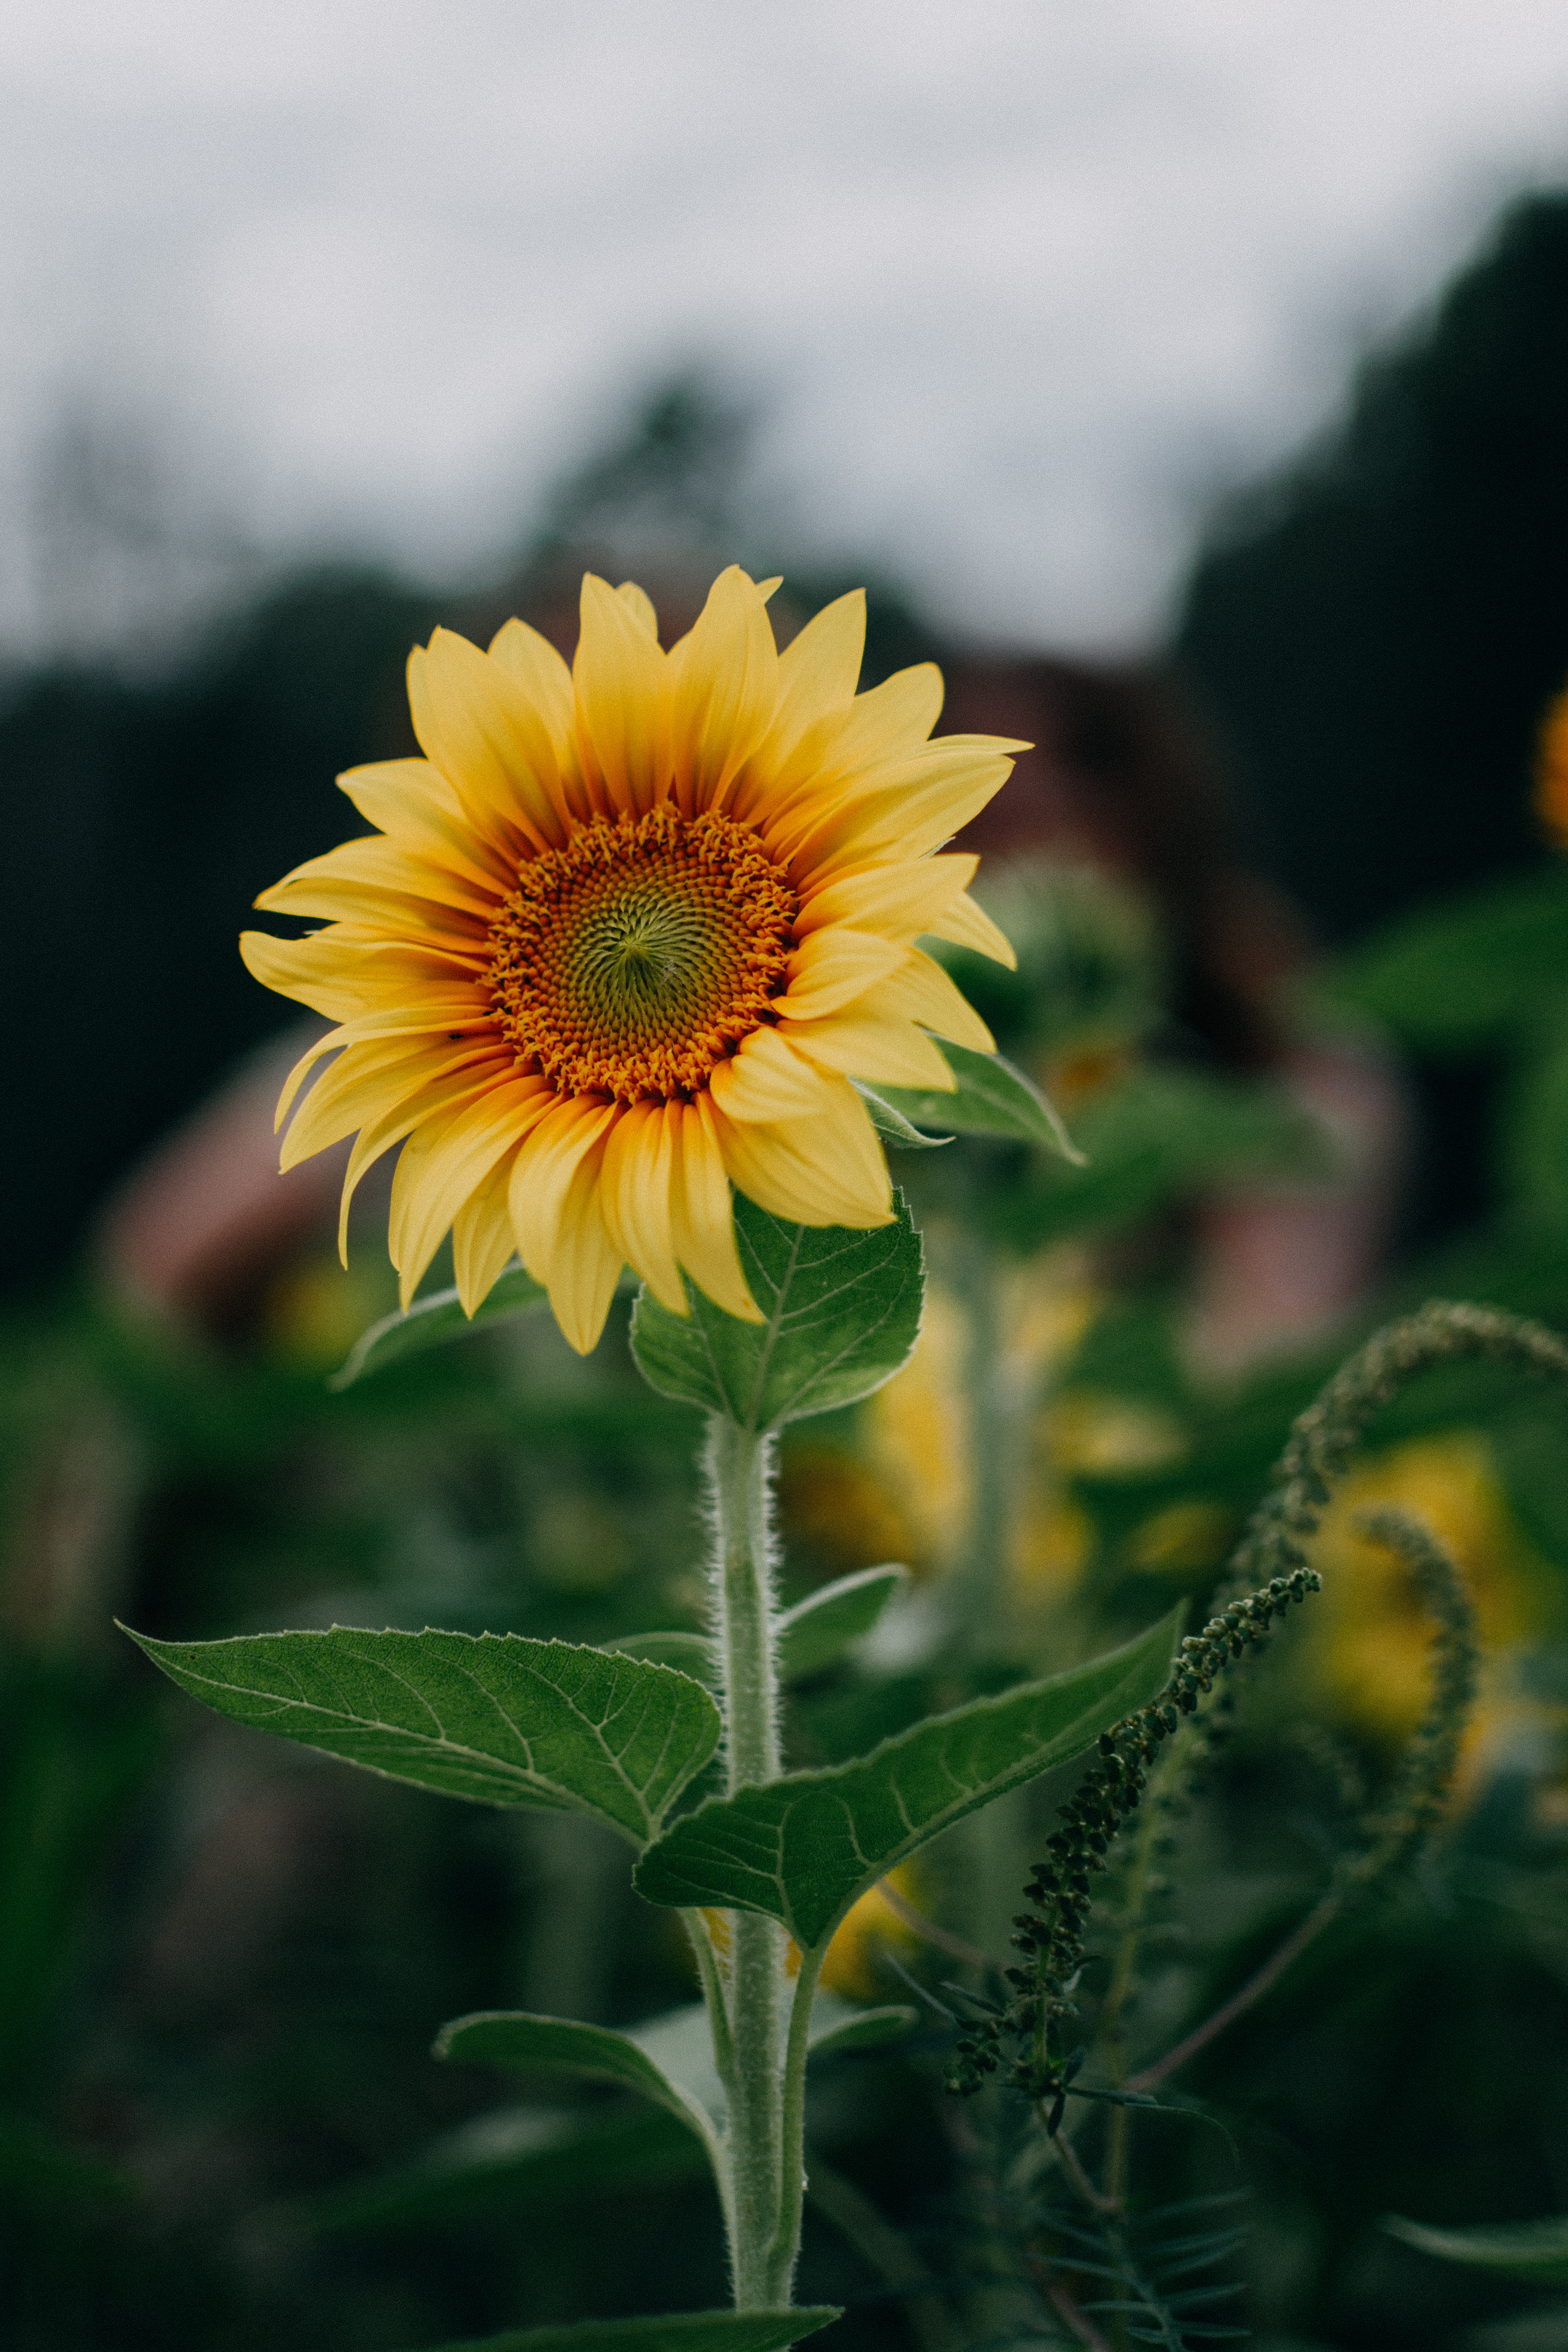 83170 download wallpaper Flower, Flowers, Summer, Field, Sunflower screensavers and pictures for free